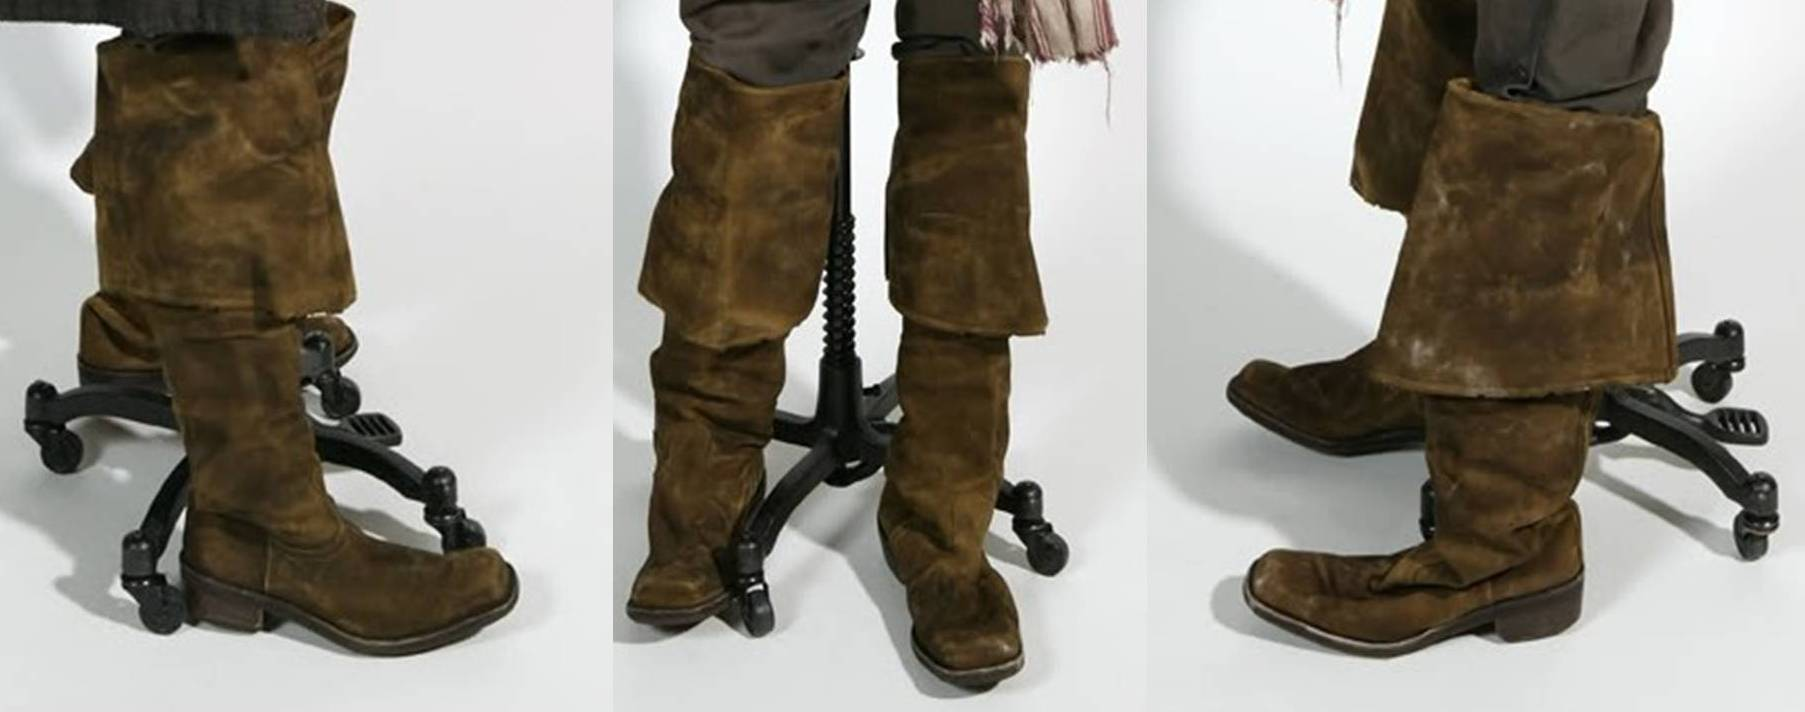 Reference Pictures - screenshot - costume display ... & Jack Sparrow Costuming - A Pirateu0027s Compendium